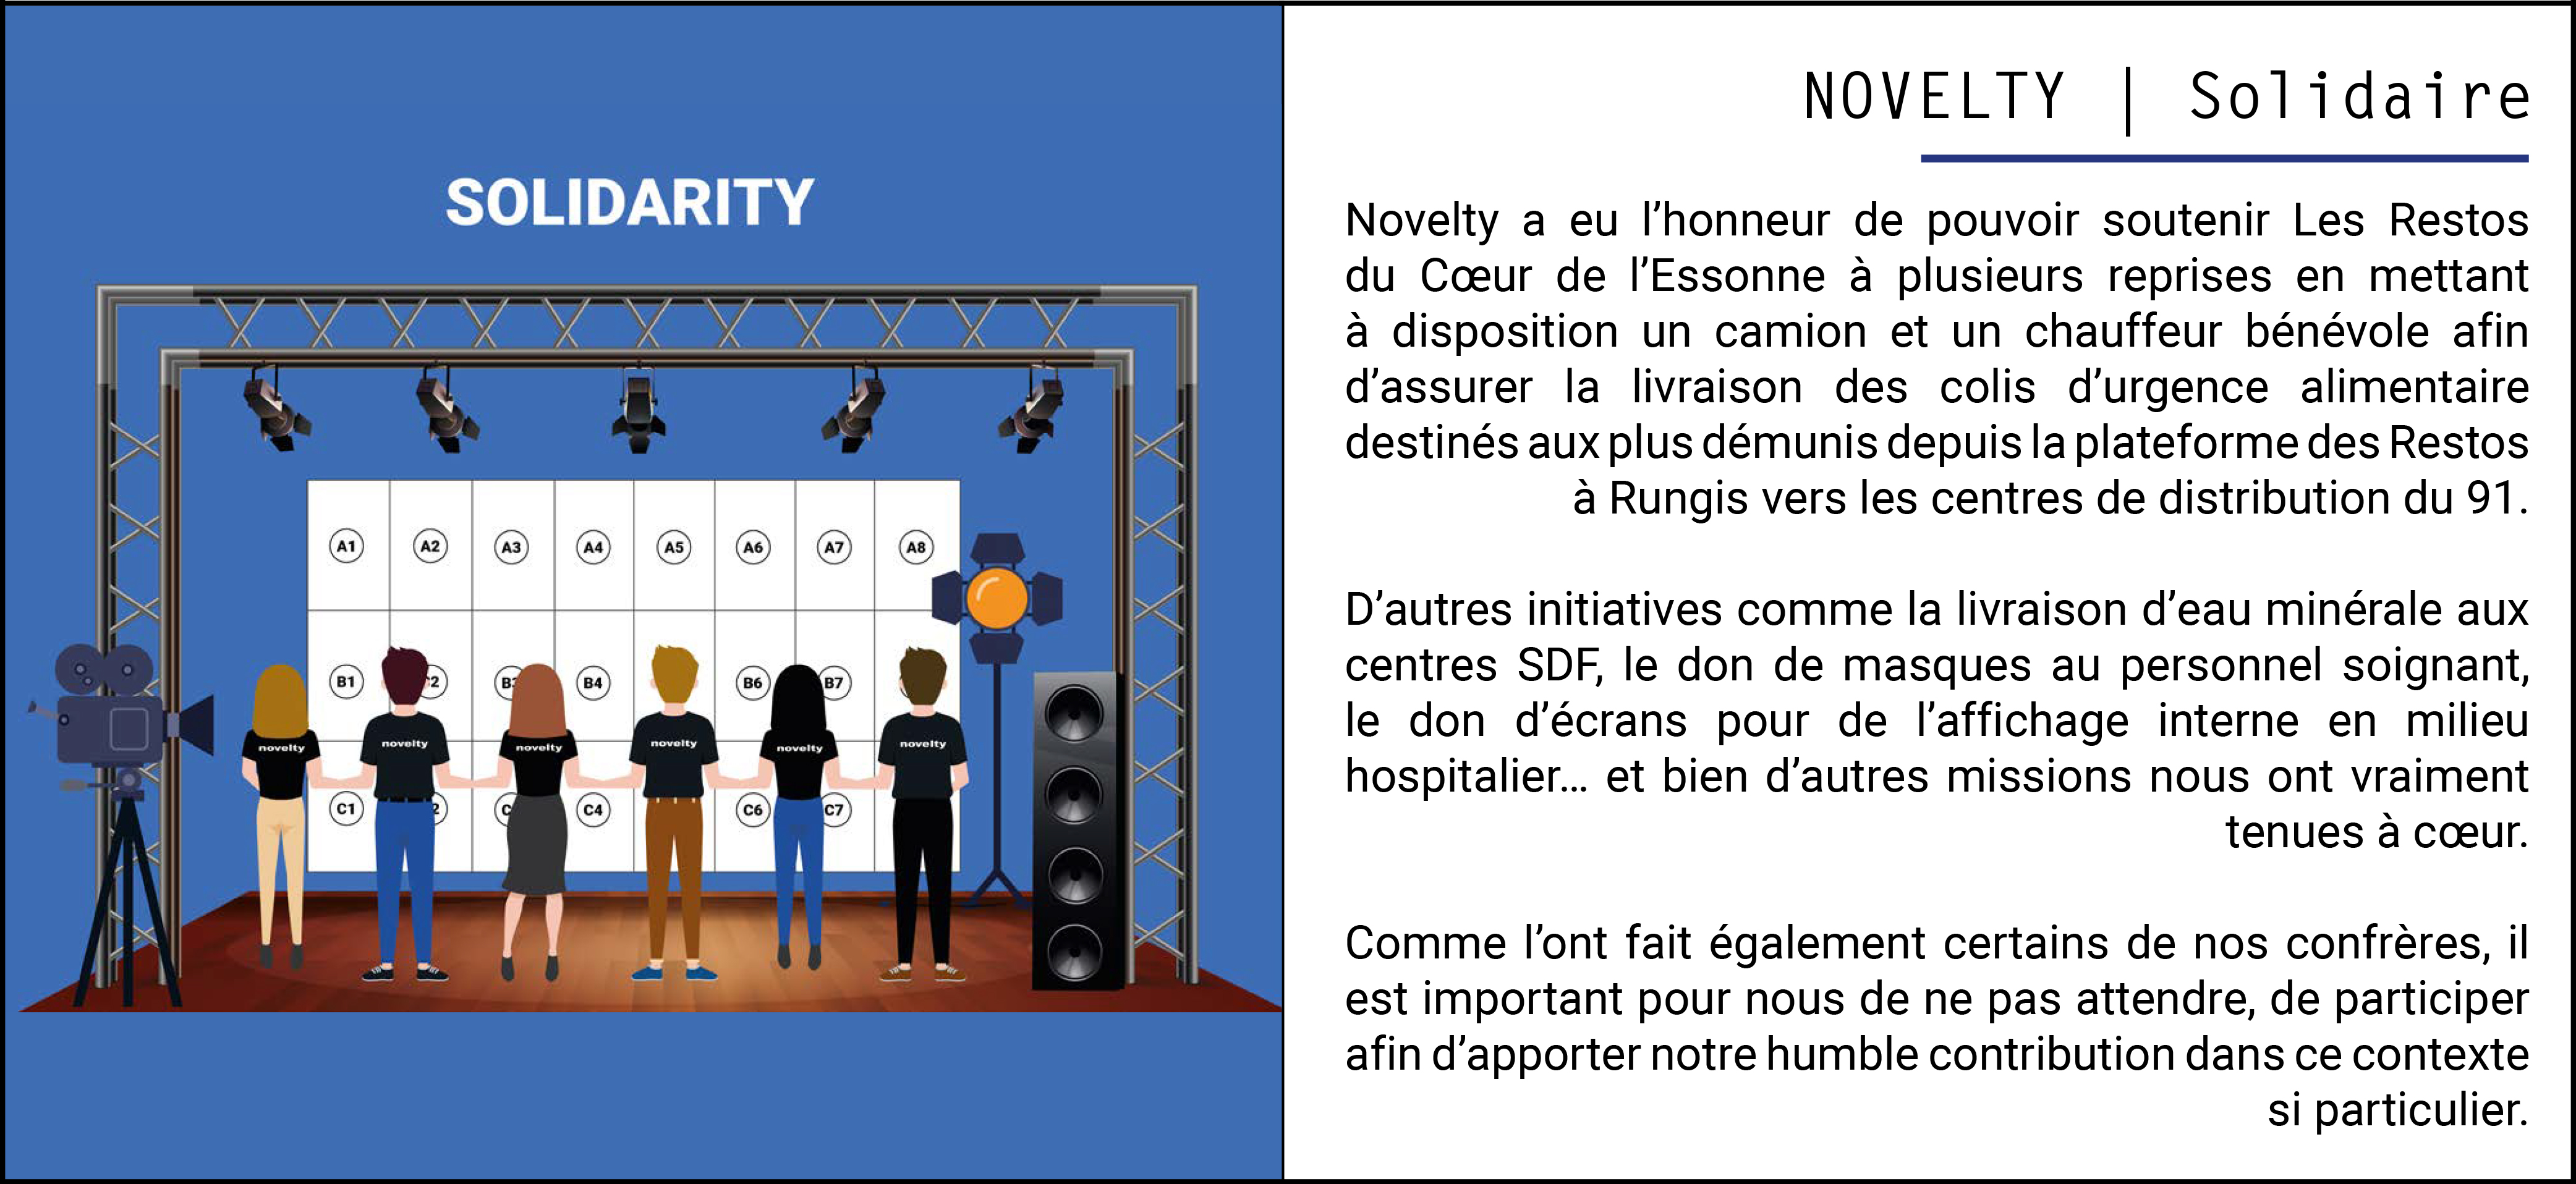 NOVELTY | Solidaire